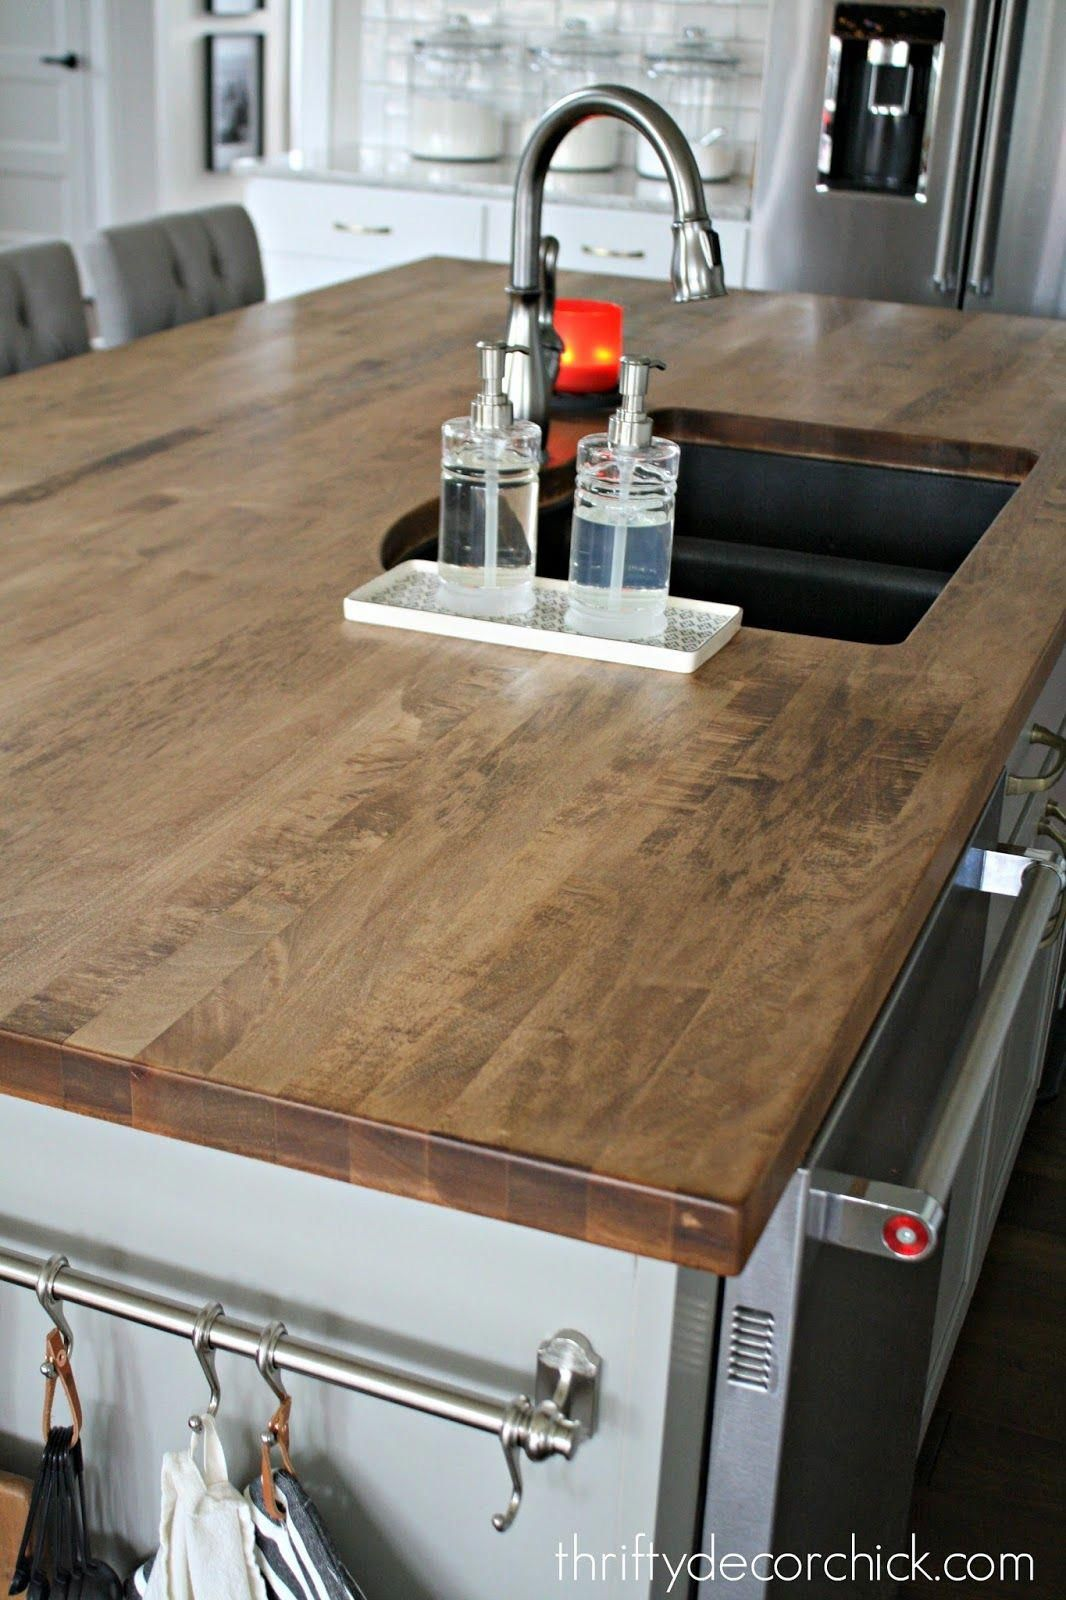 Staining And Sealing A Wood Countertop Kitchencabinetswhite